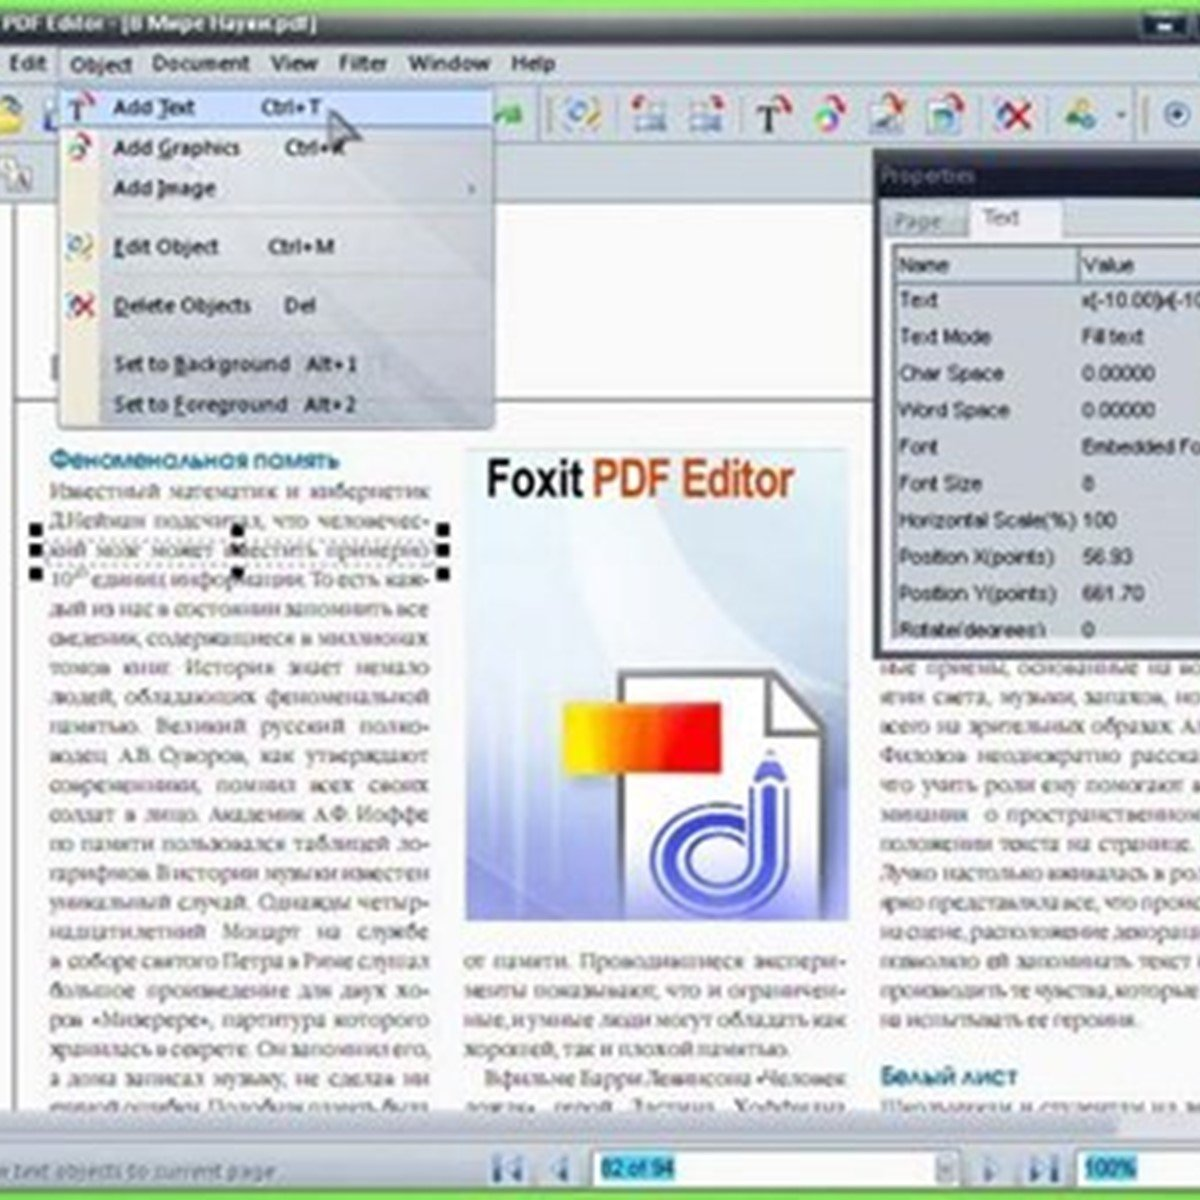 foxit pdf editor free download for windows